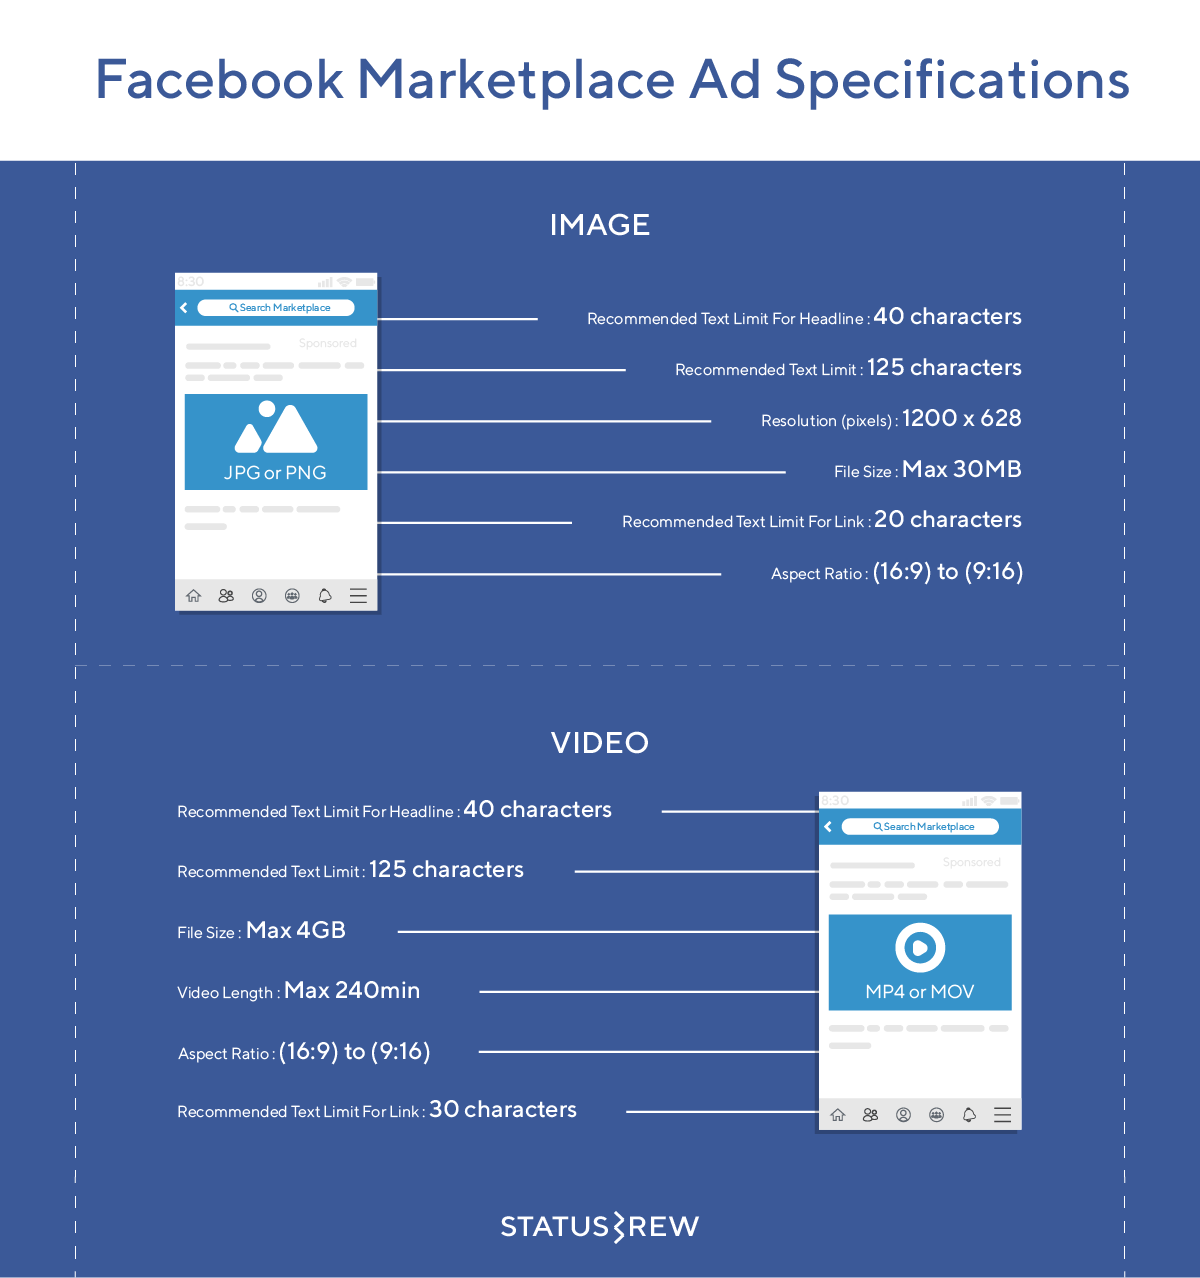 Facebook Marketplace Ad Specifications